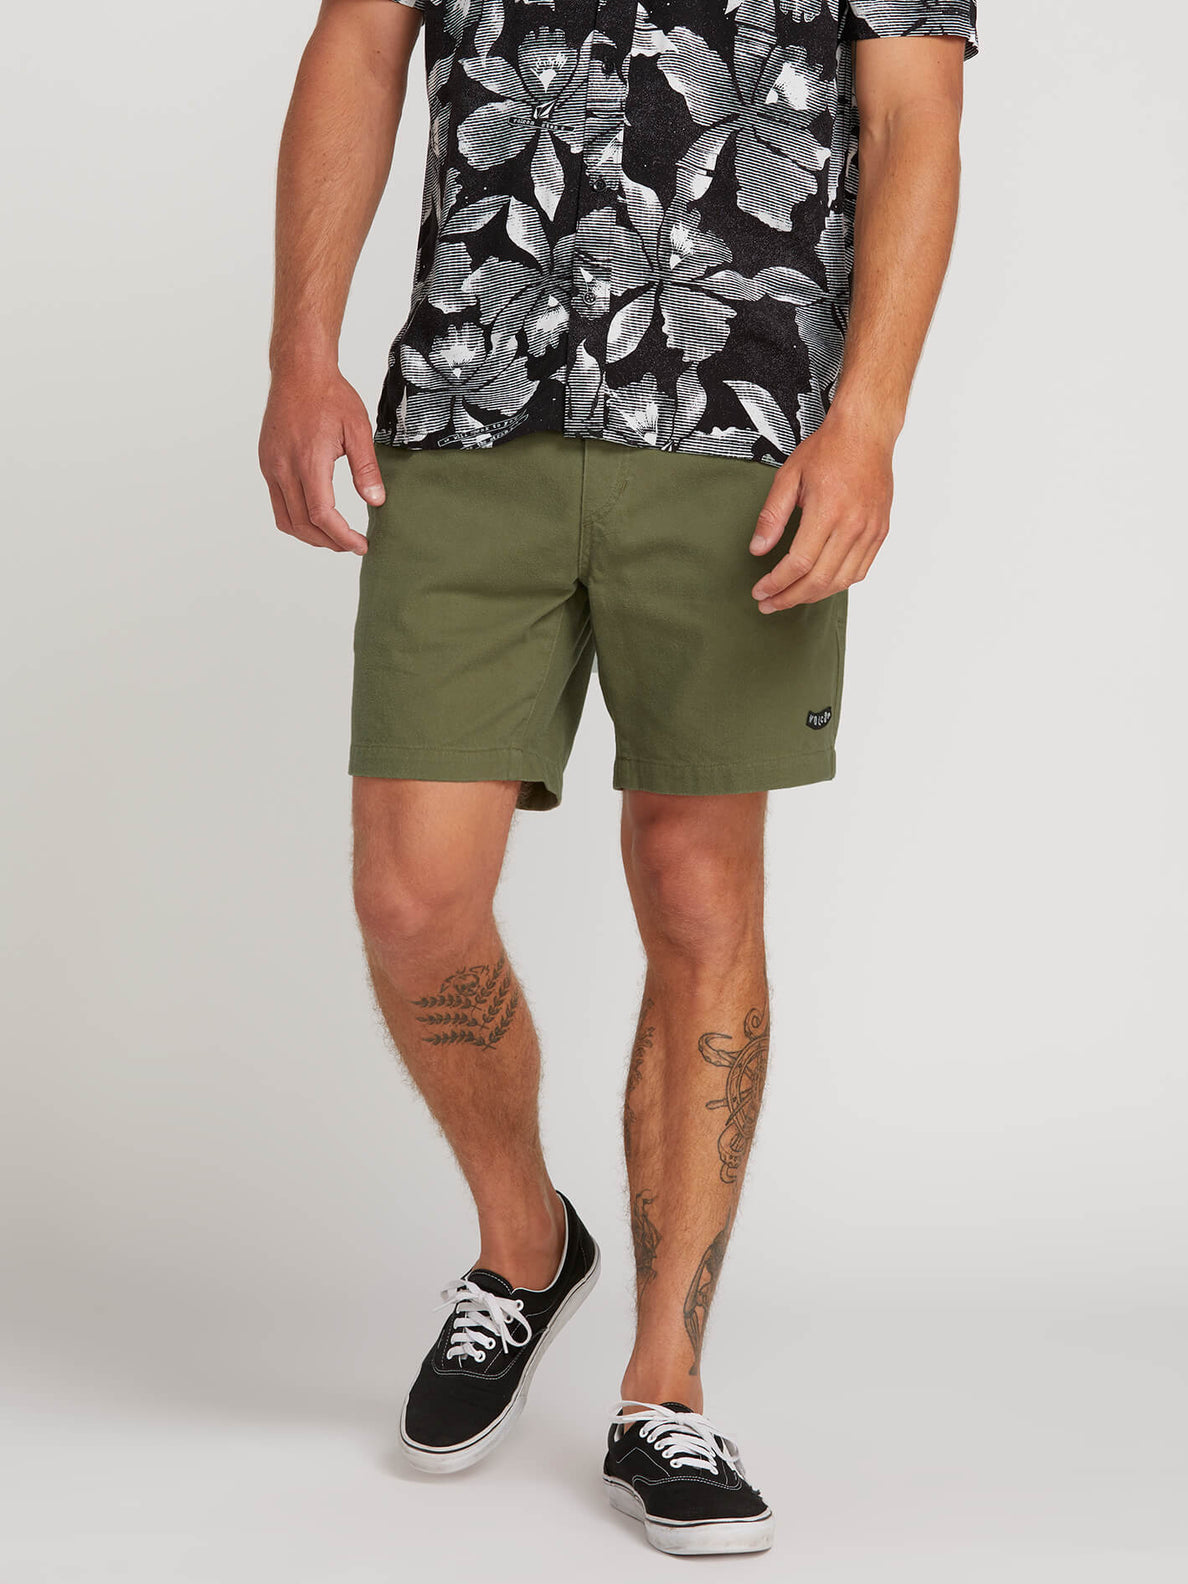 Hazed Shorts In Army, Front View